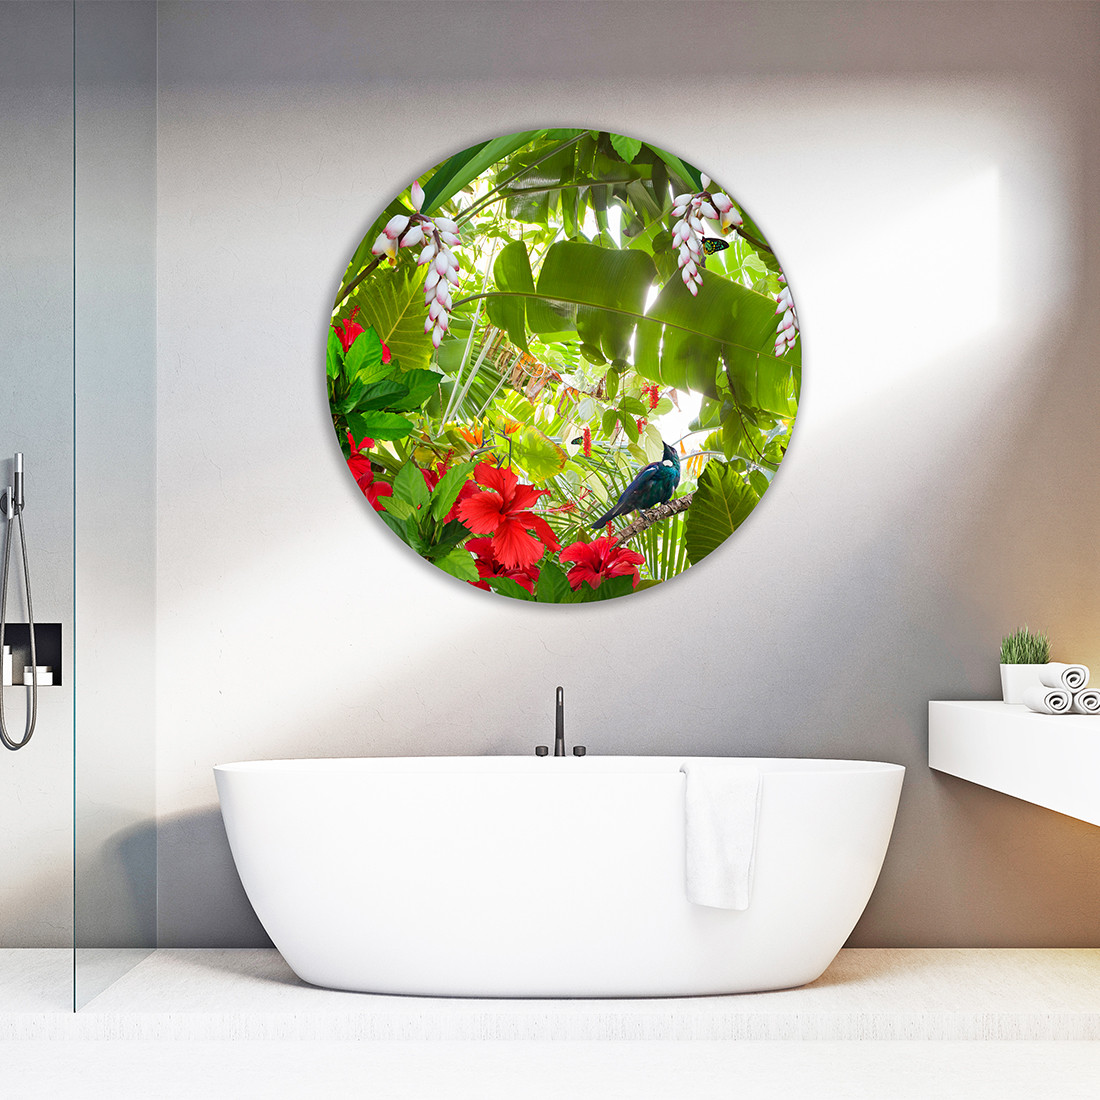 Tui Paradise 500mm To 1200mm Dia Round Aluminium Or Glass Bathroom Art Creative Nz Photography Art By Lucy G